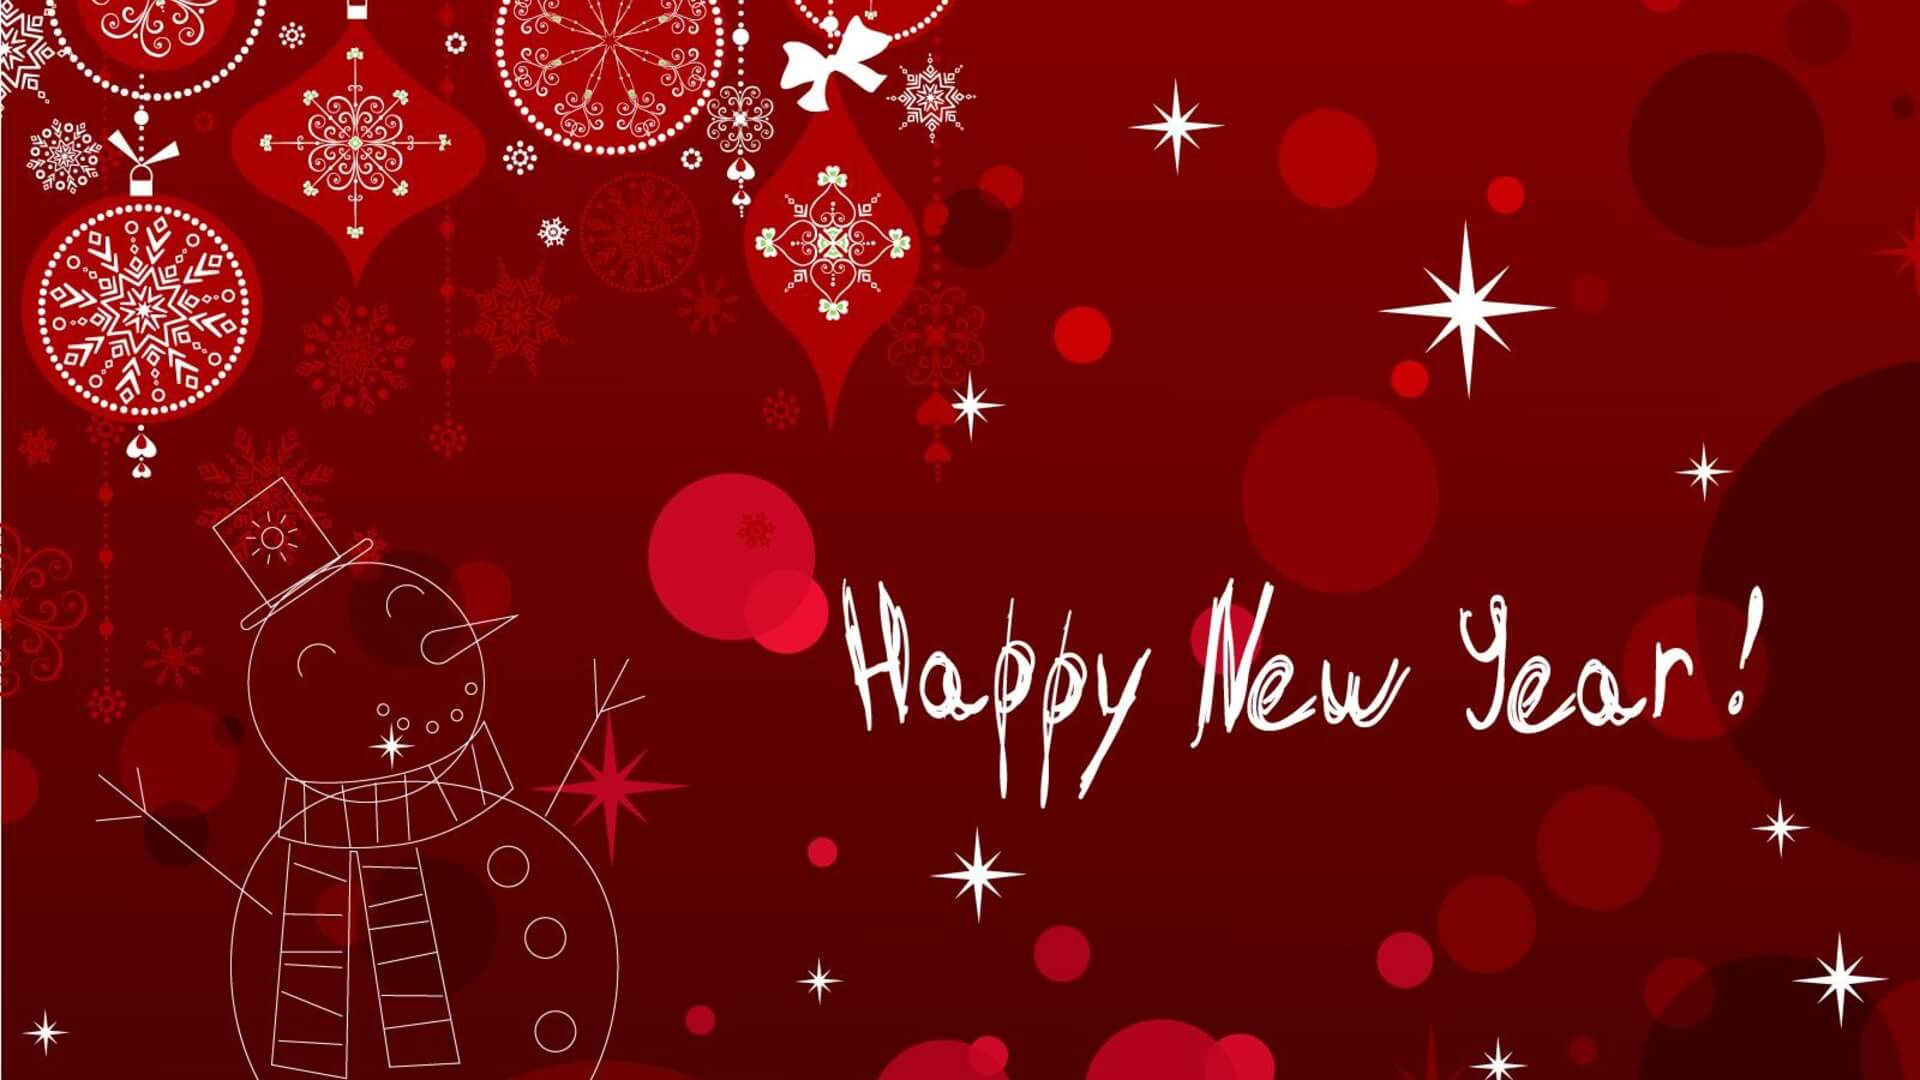 Happy new year wishes quotes sms 2019 ienglish status happy new year wishes quotes sms 2019 m4hsunfo